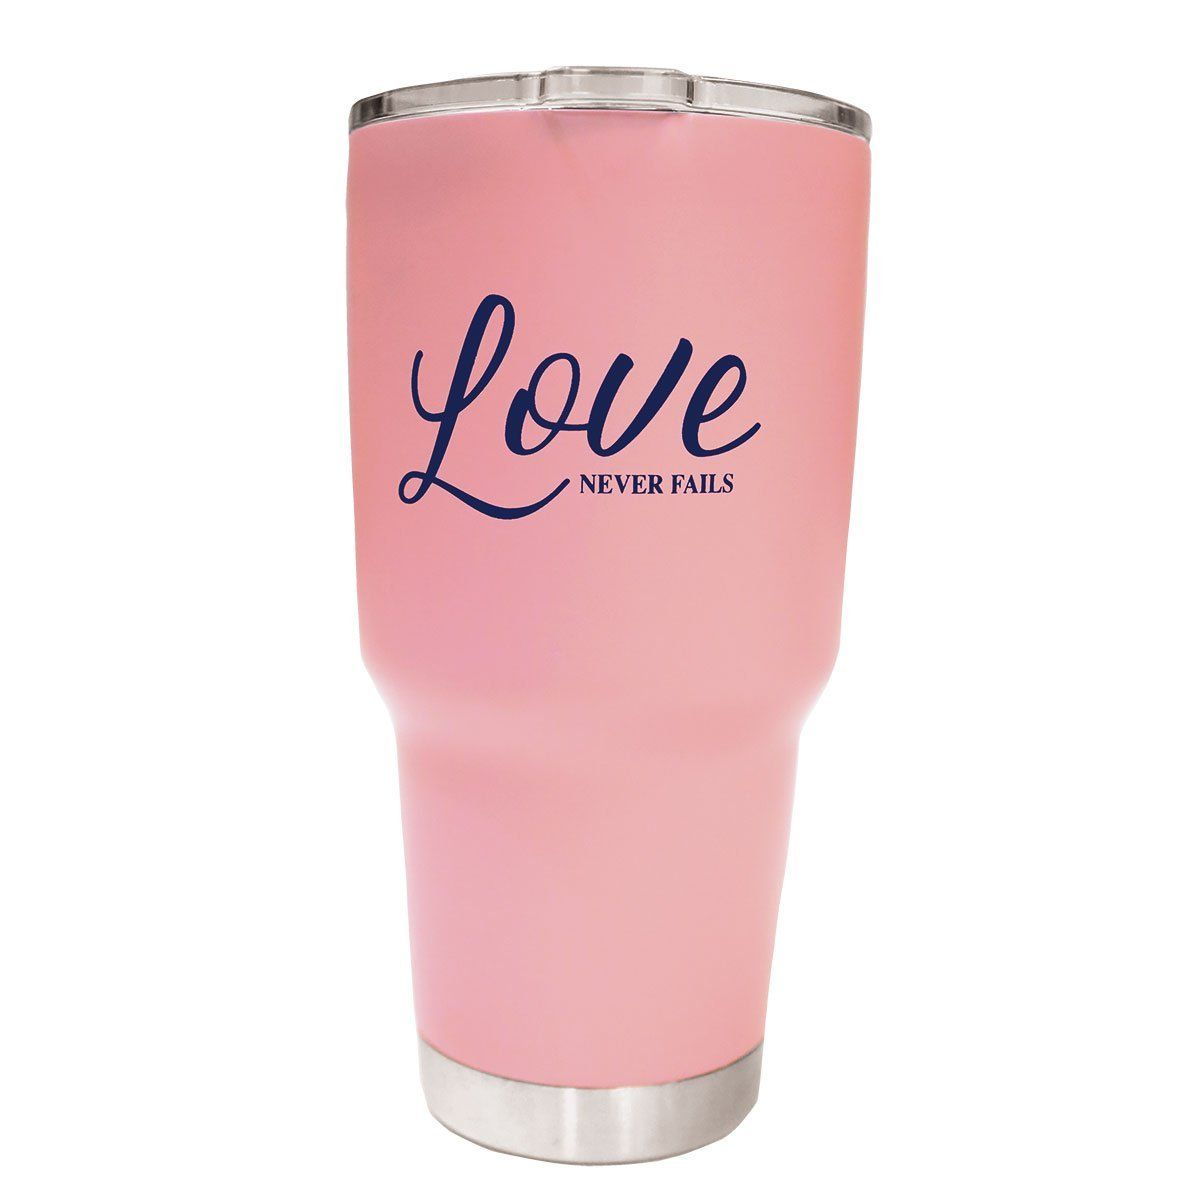 """Drink in encouragement with every sip from this pretty """"Love Never Fails"""" Dual Wall Stainless Steel Tumbler in Pink. A reminder of God's love is always timely, always positive, and always powerful. Loving others like Jesus is a beautiful way to live life, and as believers we know God's love for us makes every day worthwhile. This generous 27-oz.-capacity tumbler is dual-walled so you can keep your favorite beverage icy cold or piping hot for hours, while sharing an inspirational message with eve"""